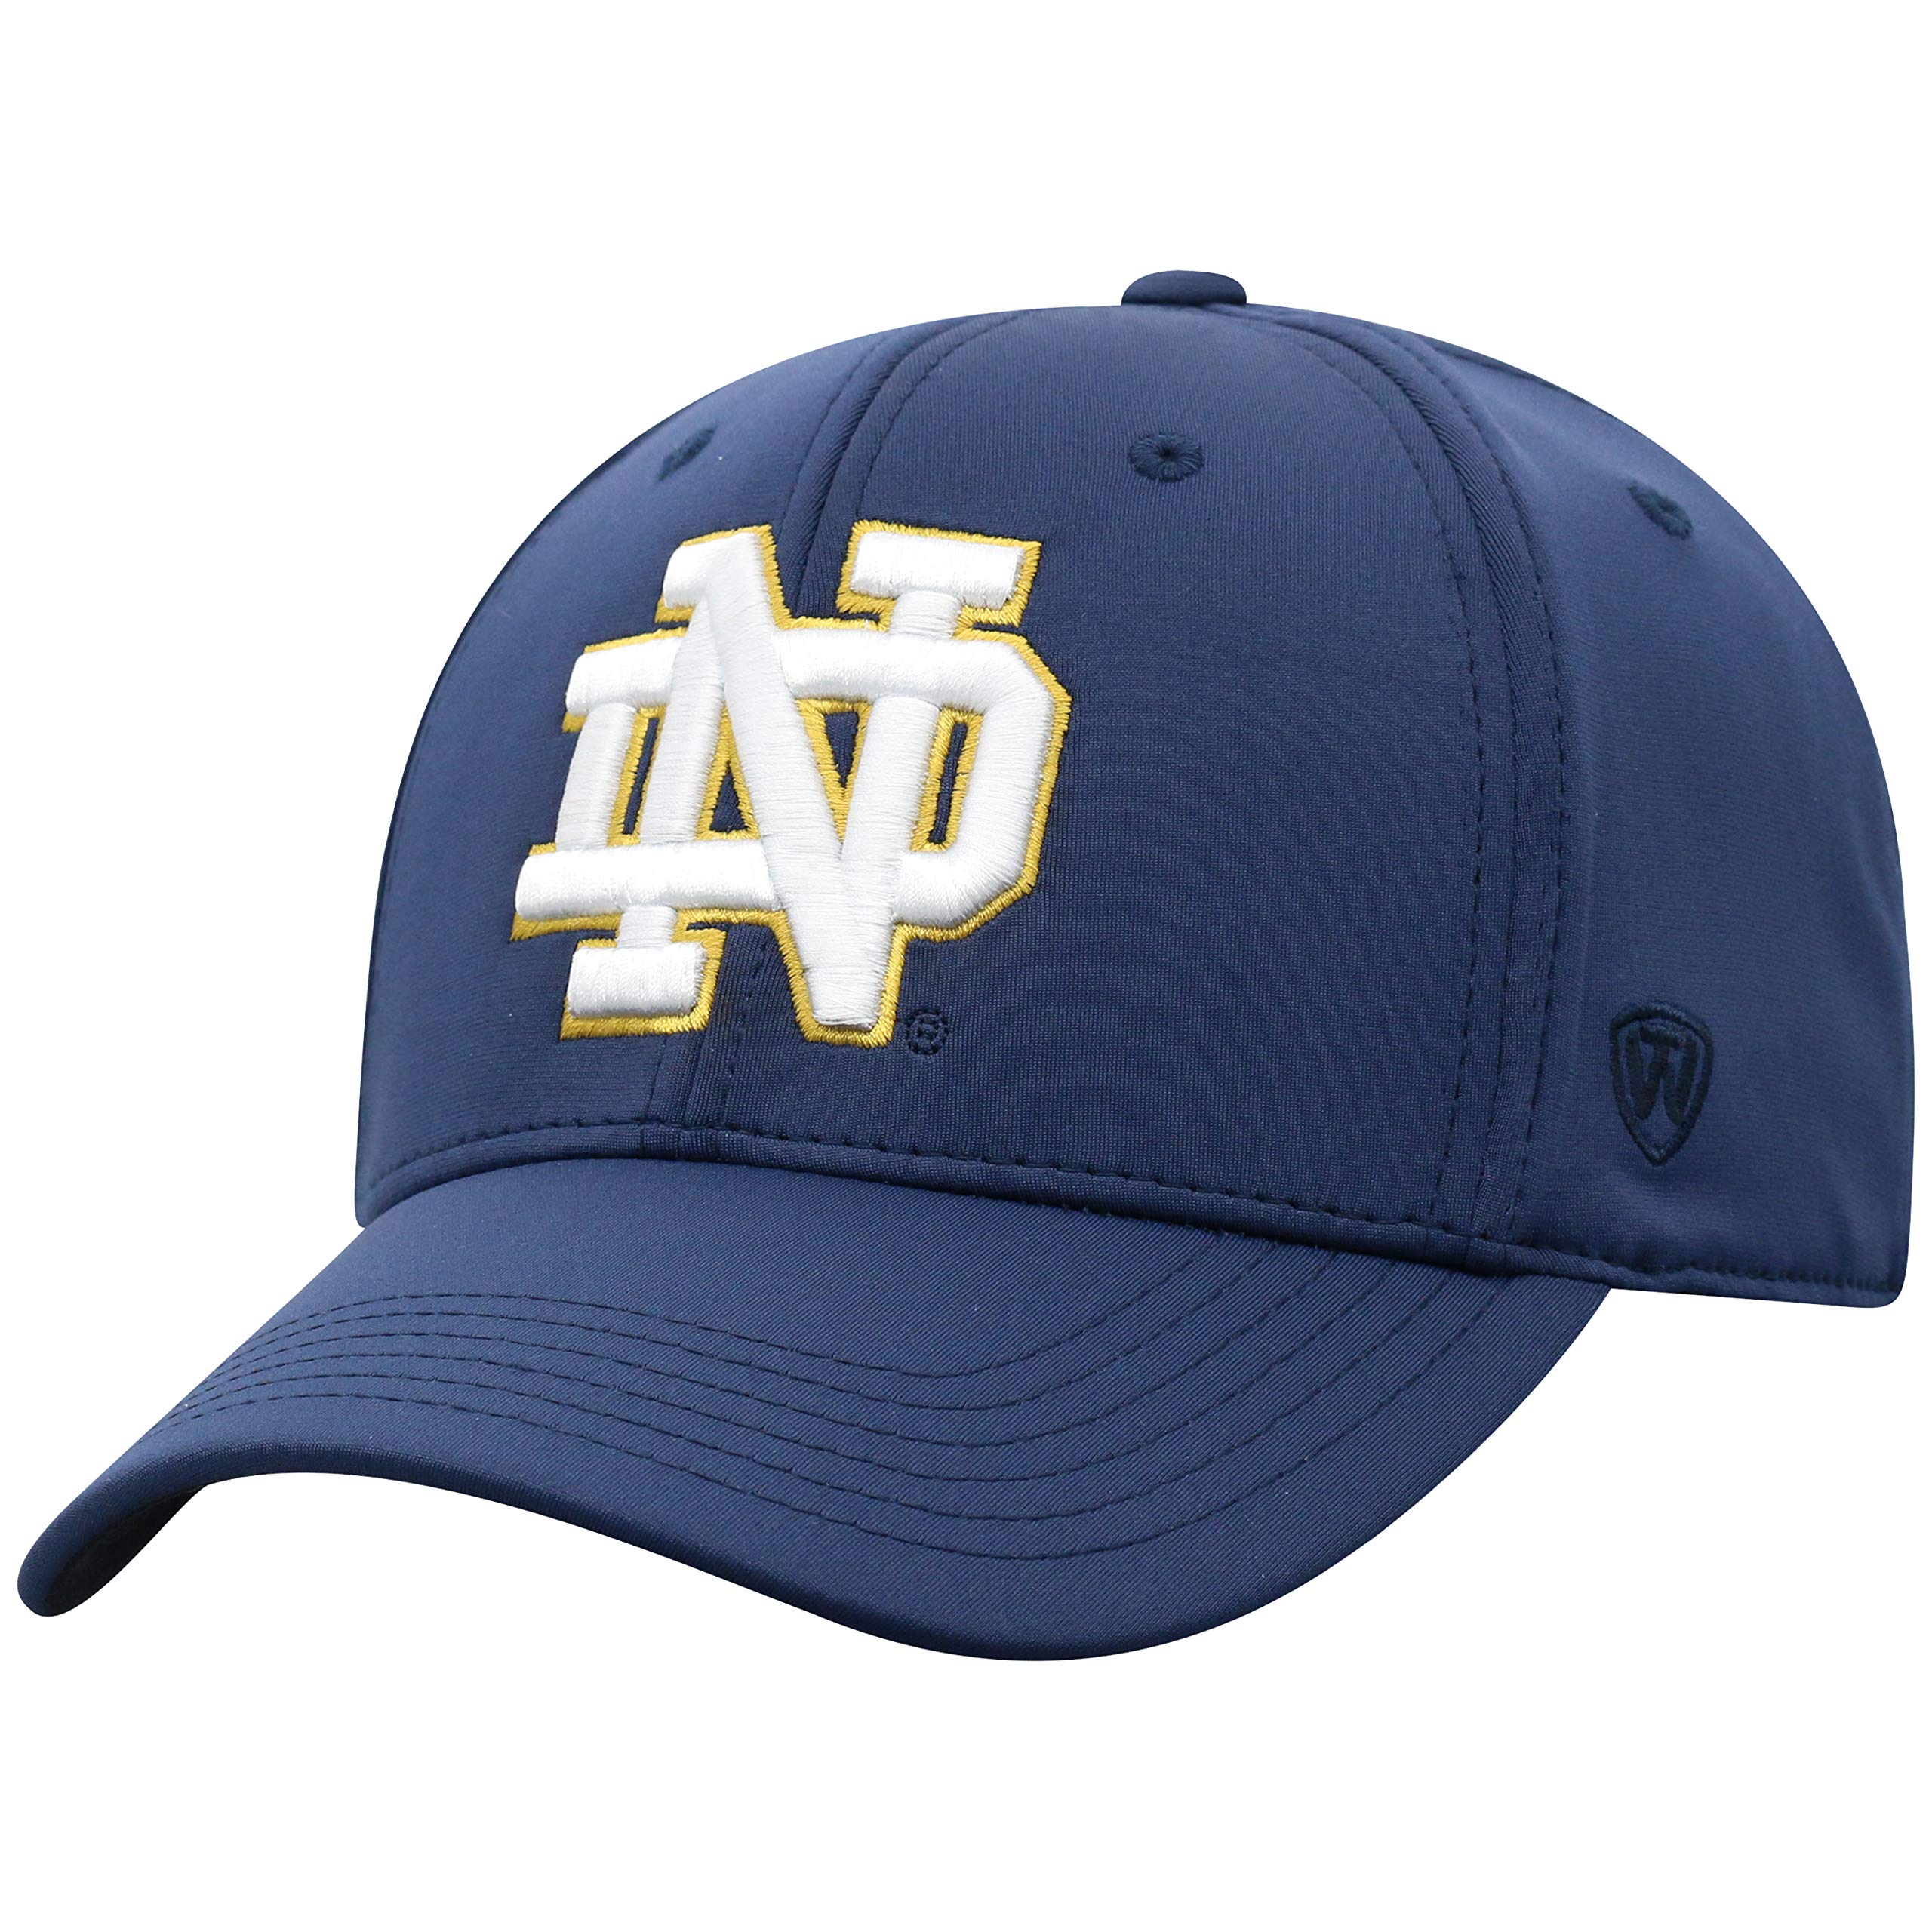 buy online 800d0 19bb1 Top of the World NCAA Notre Dame Fighting Irish Men s One Fit Phenom Team Icon  Hat, Navy